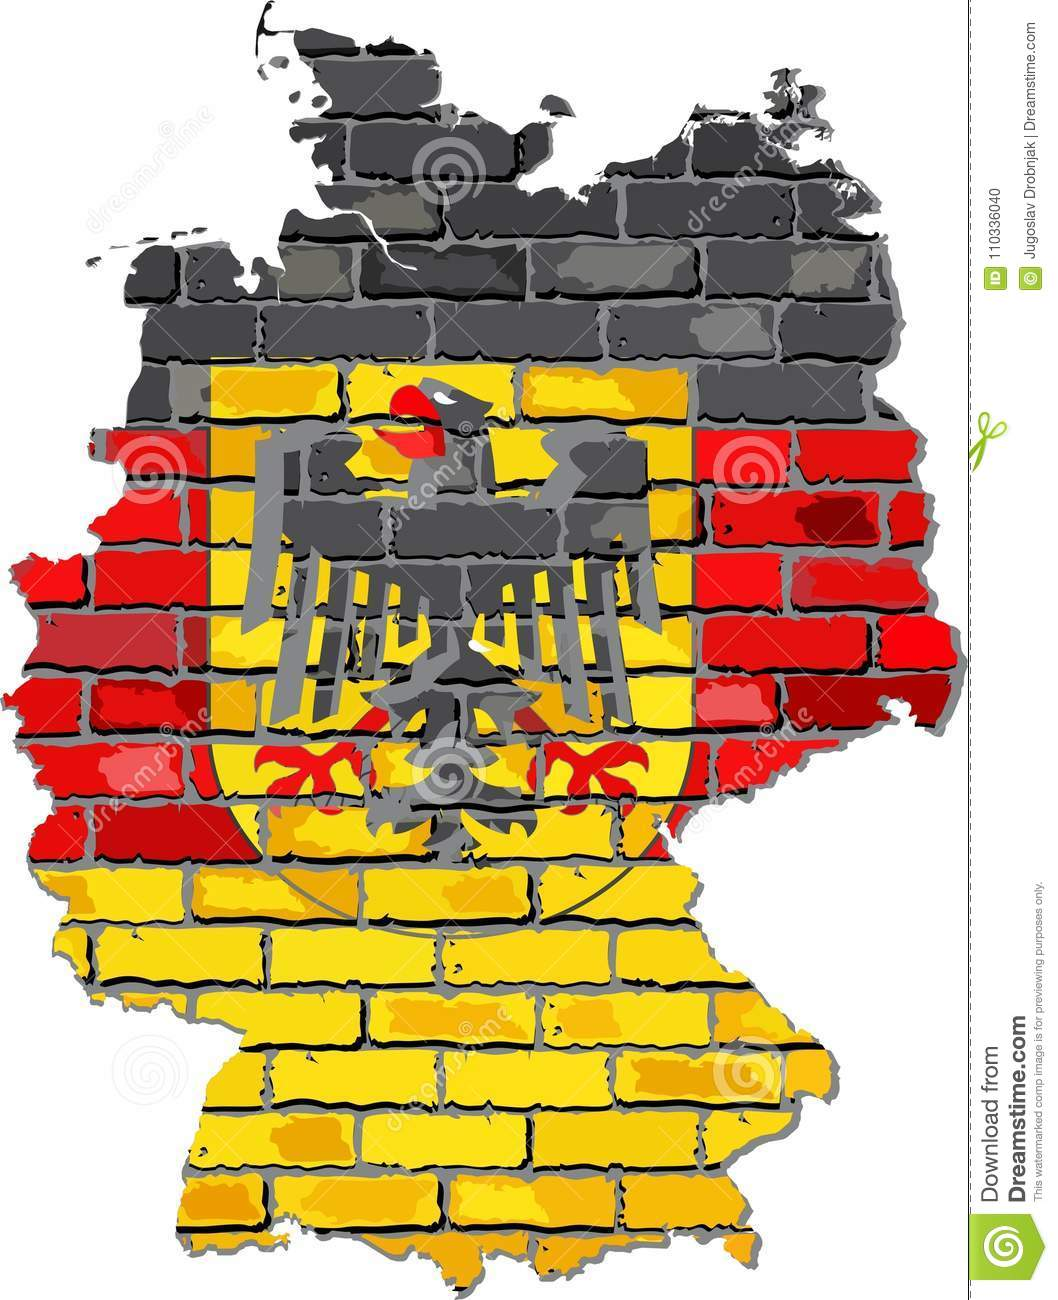 Map Of Deutschland Germany.Germany Map With Emblem On A Brick Wall Stock Vector Illustration